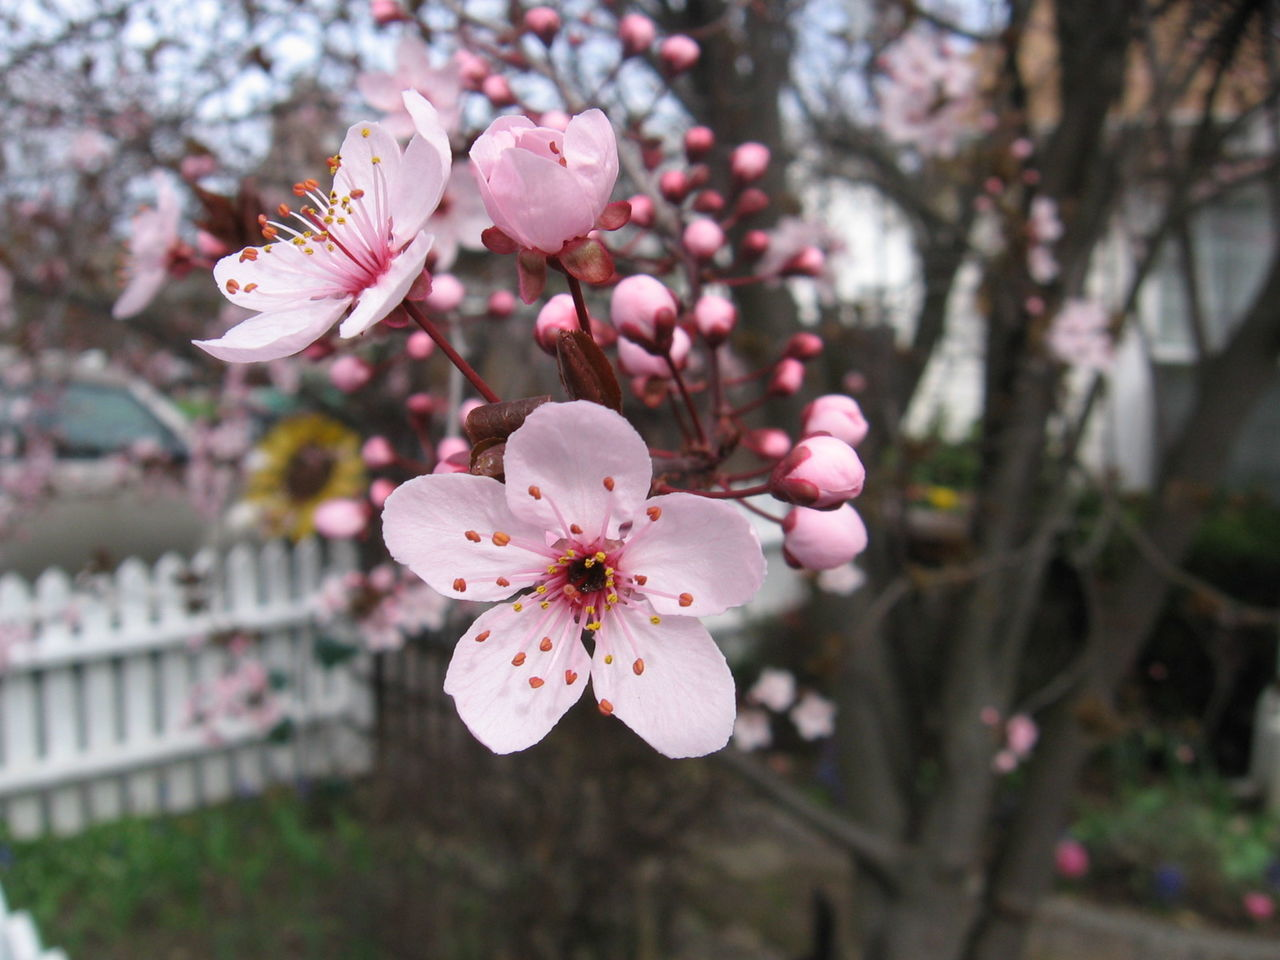 flower, fragility, beauty in nature, blossom, growth, freshness, springtime, pink color, petal, tree, no people, branch, flower head, nature, apple blossom, botany, focus on foreground, close-up, day, outdoors, stamen, twig, plum blossom, blooming